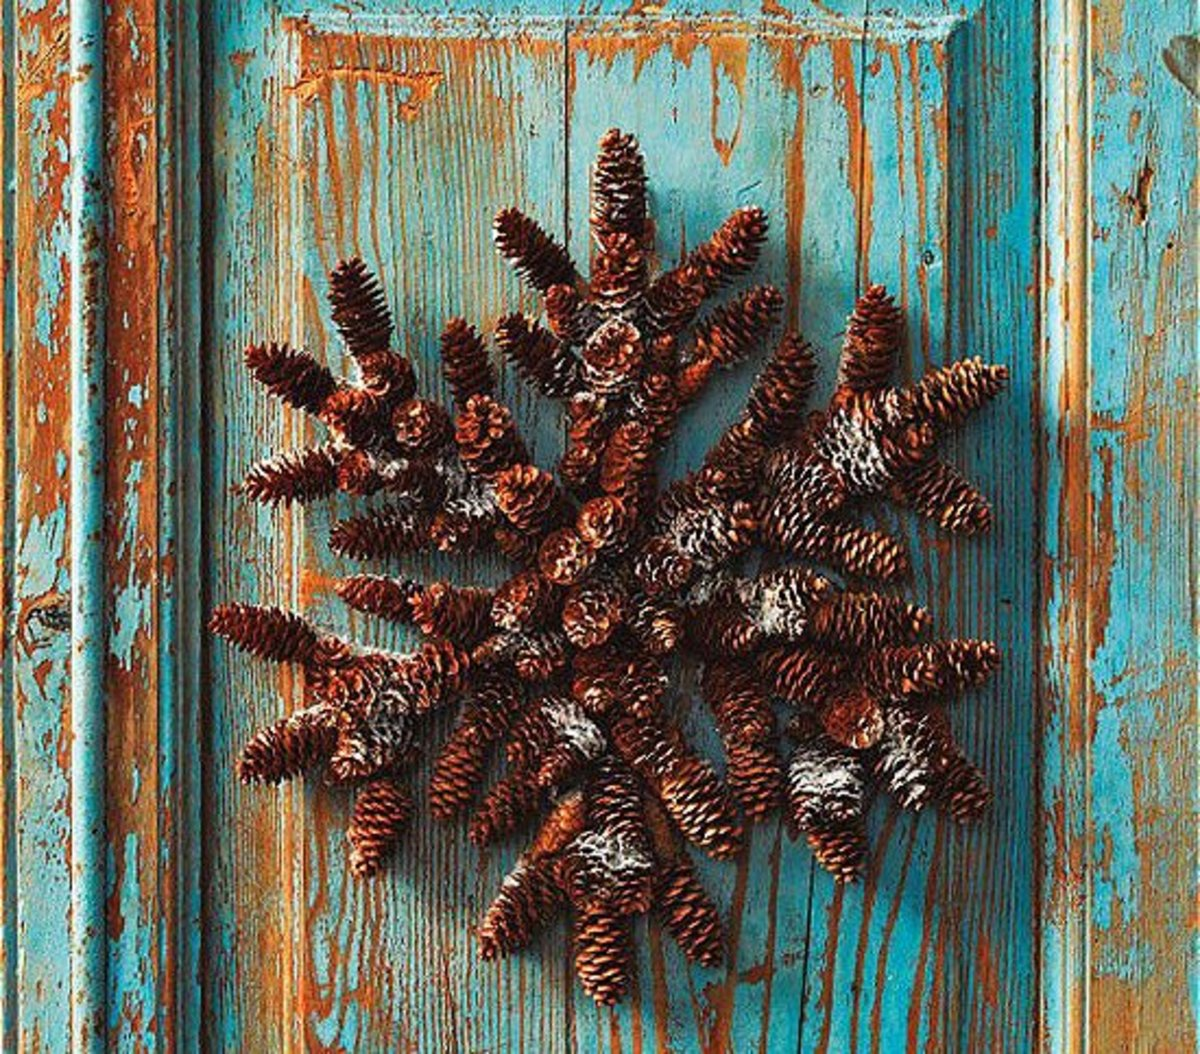 Unique, snowflake-shaped Christmas wreath, made from pine cones.